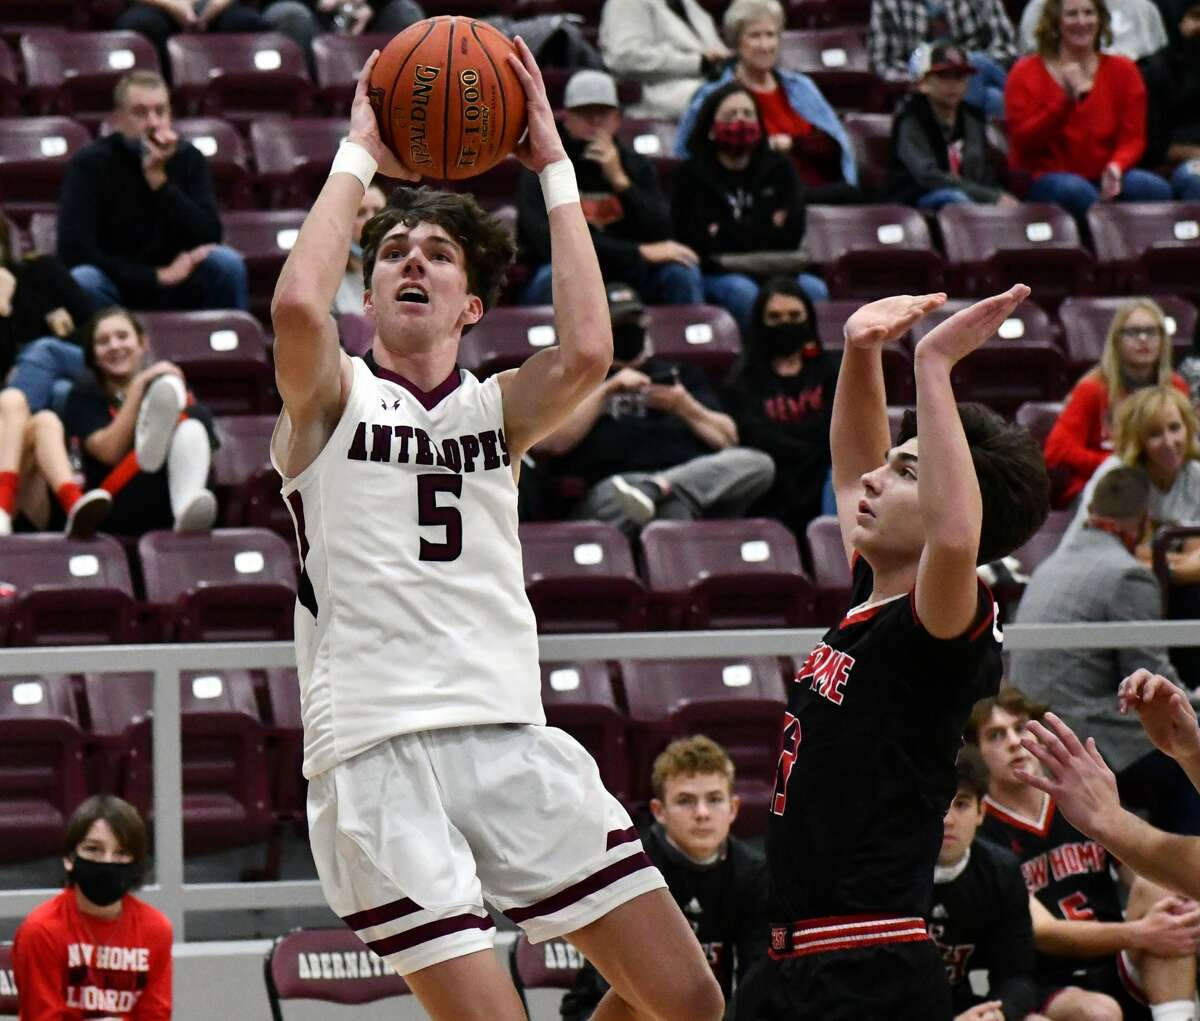 Abernathy hosted New Home in a basketball doubleheader on Nov. 5, 2020 at Abernathy High School. The Lady Lopes fell 40-34 and the Antelopes suffered a 61-53 defeat.